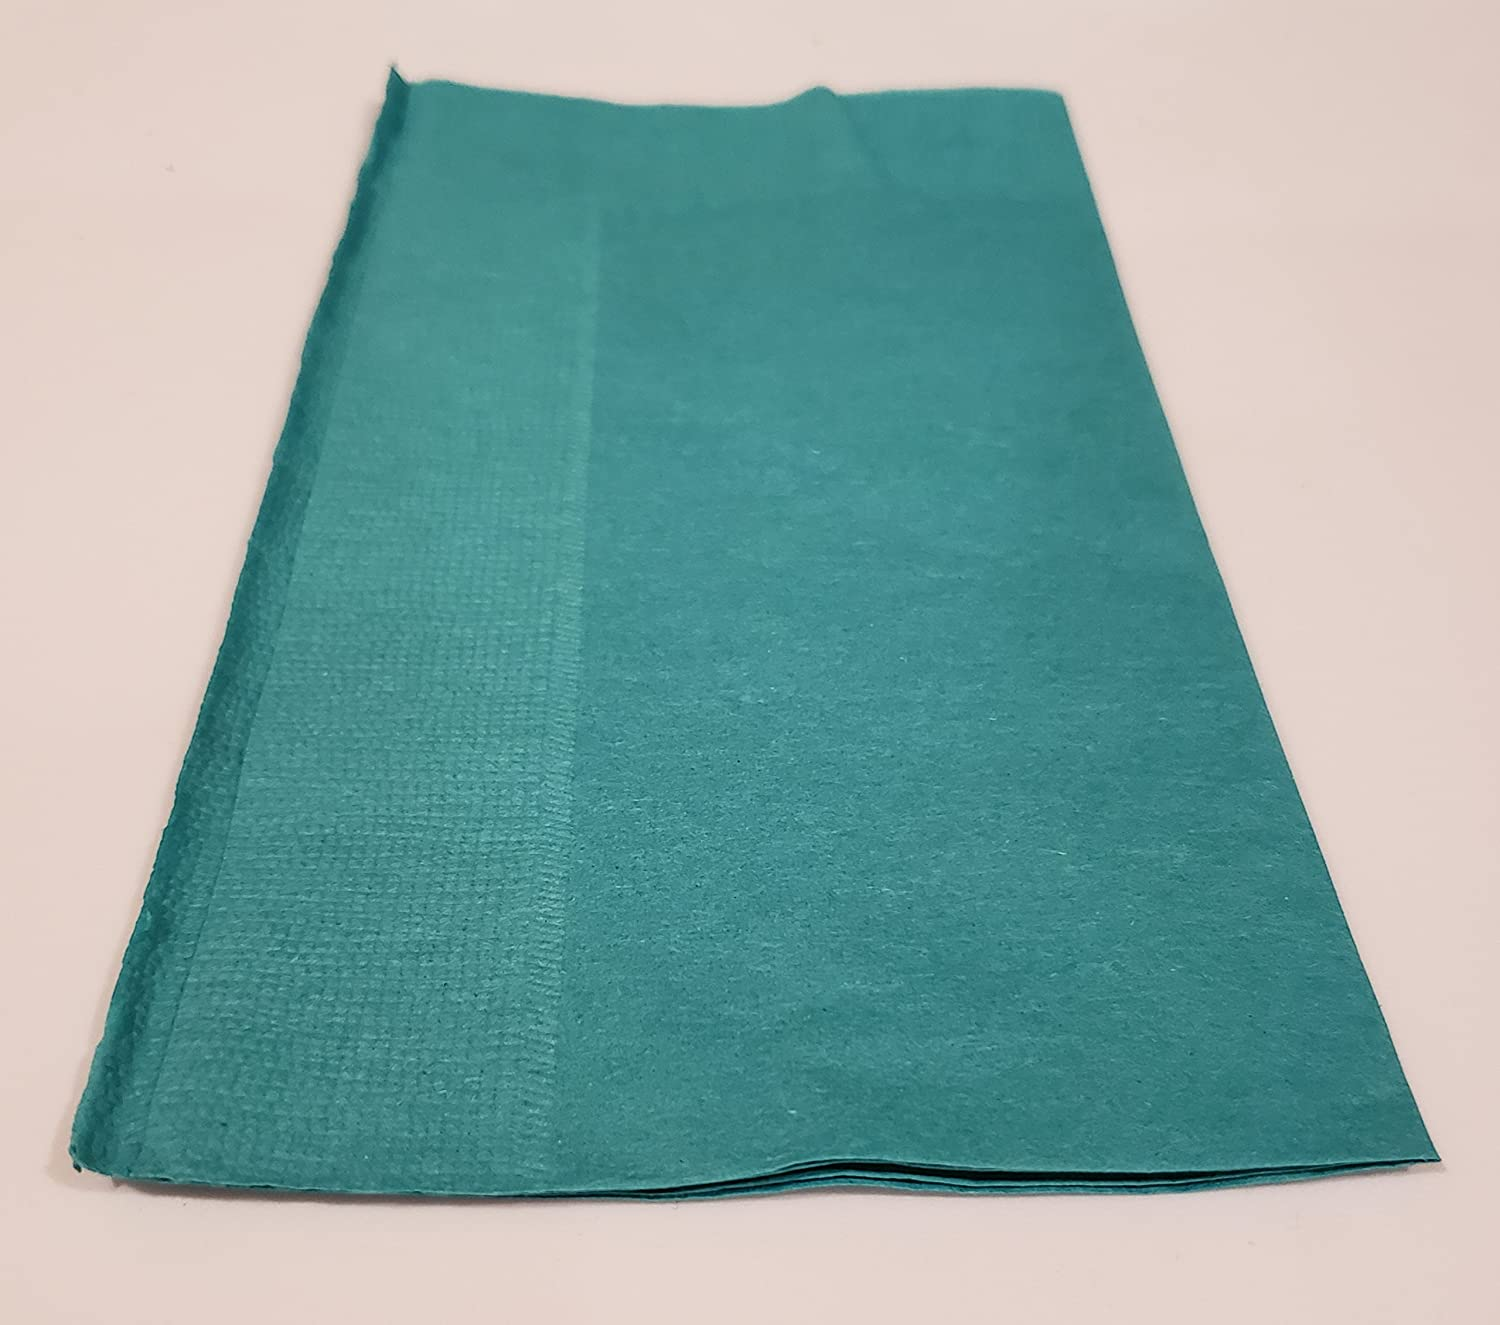 Choice 15  x 17  Teal 2-Ply Paper Dinner Napkin - 125 Pack